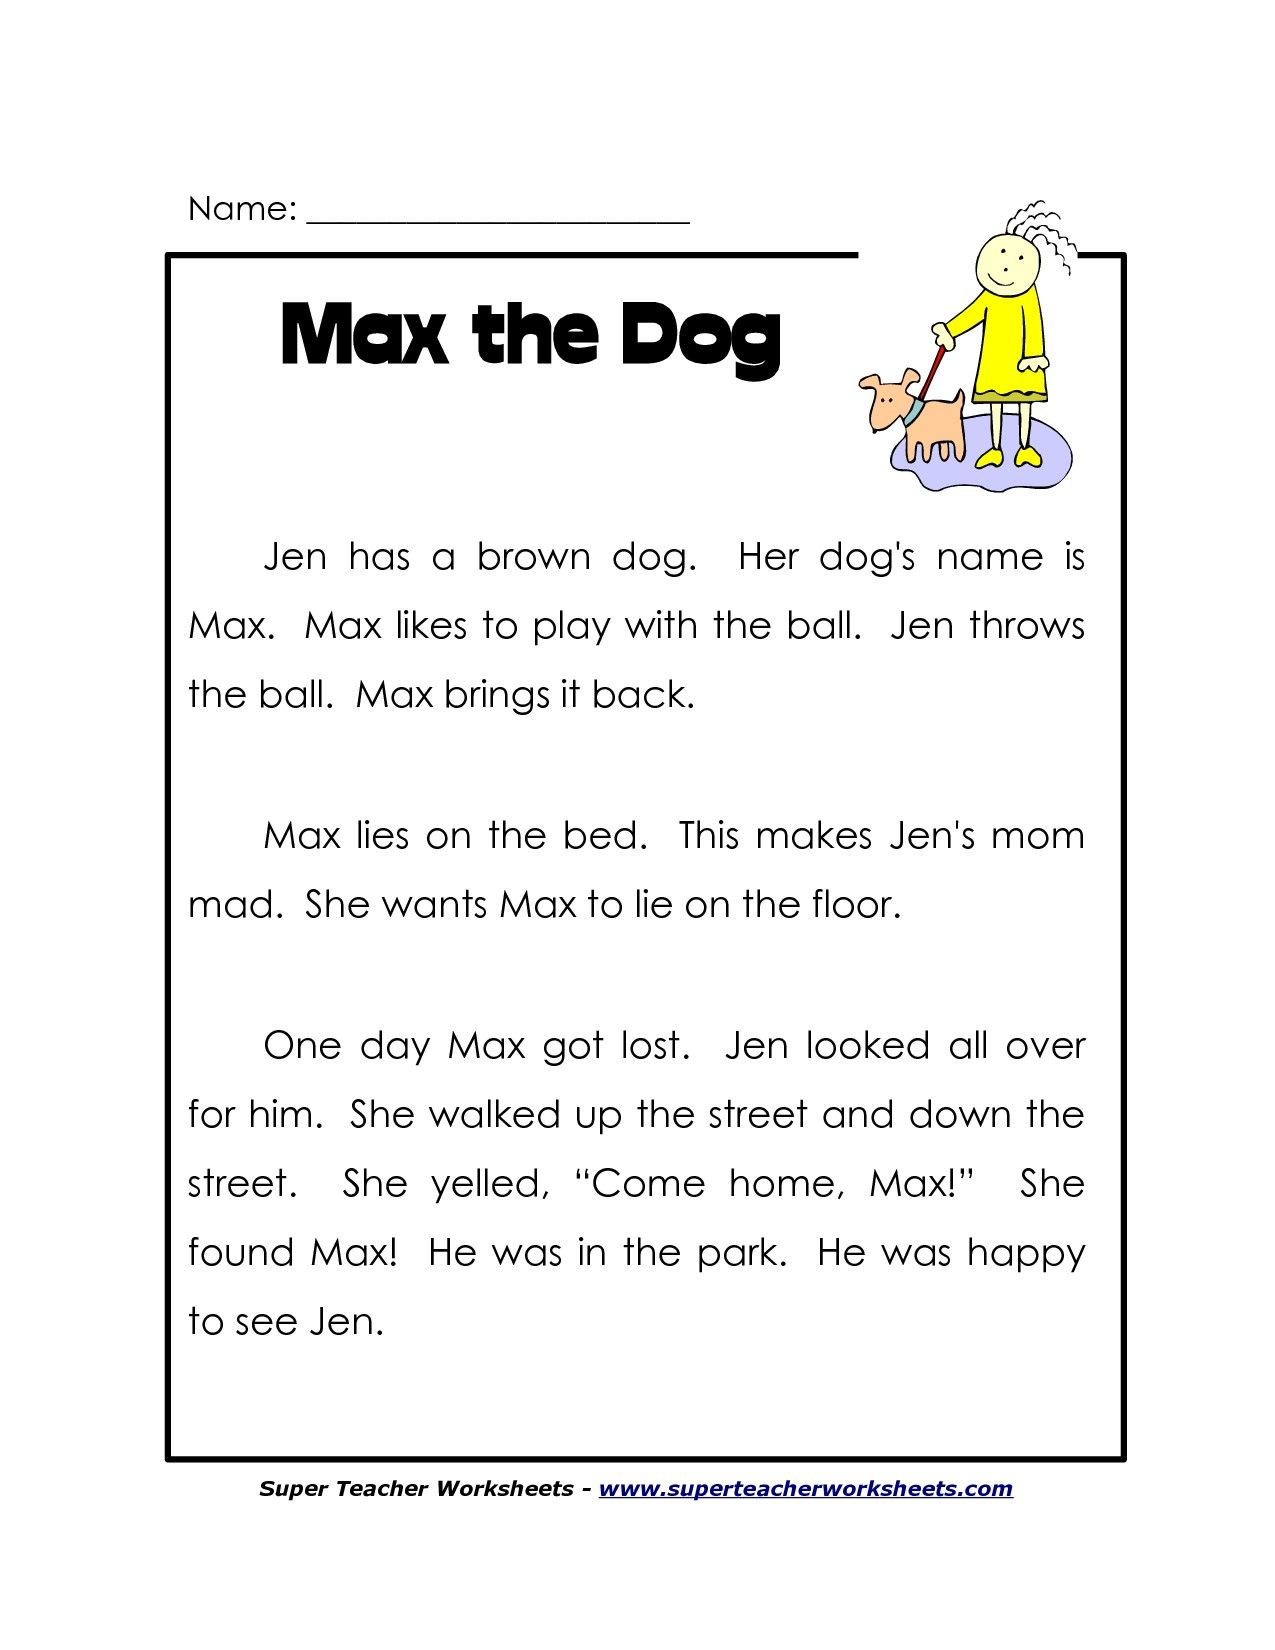 Worksheets 2 Grade Reading Worksheets 1st grade reading worksheets free lots more on superteacherworksheets com